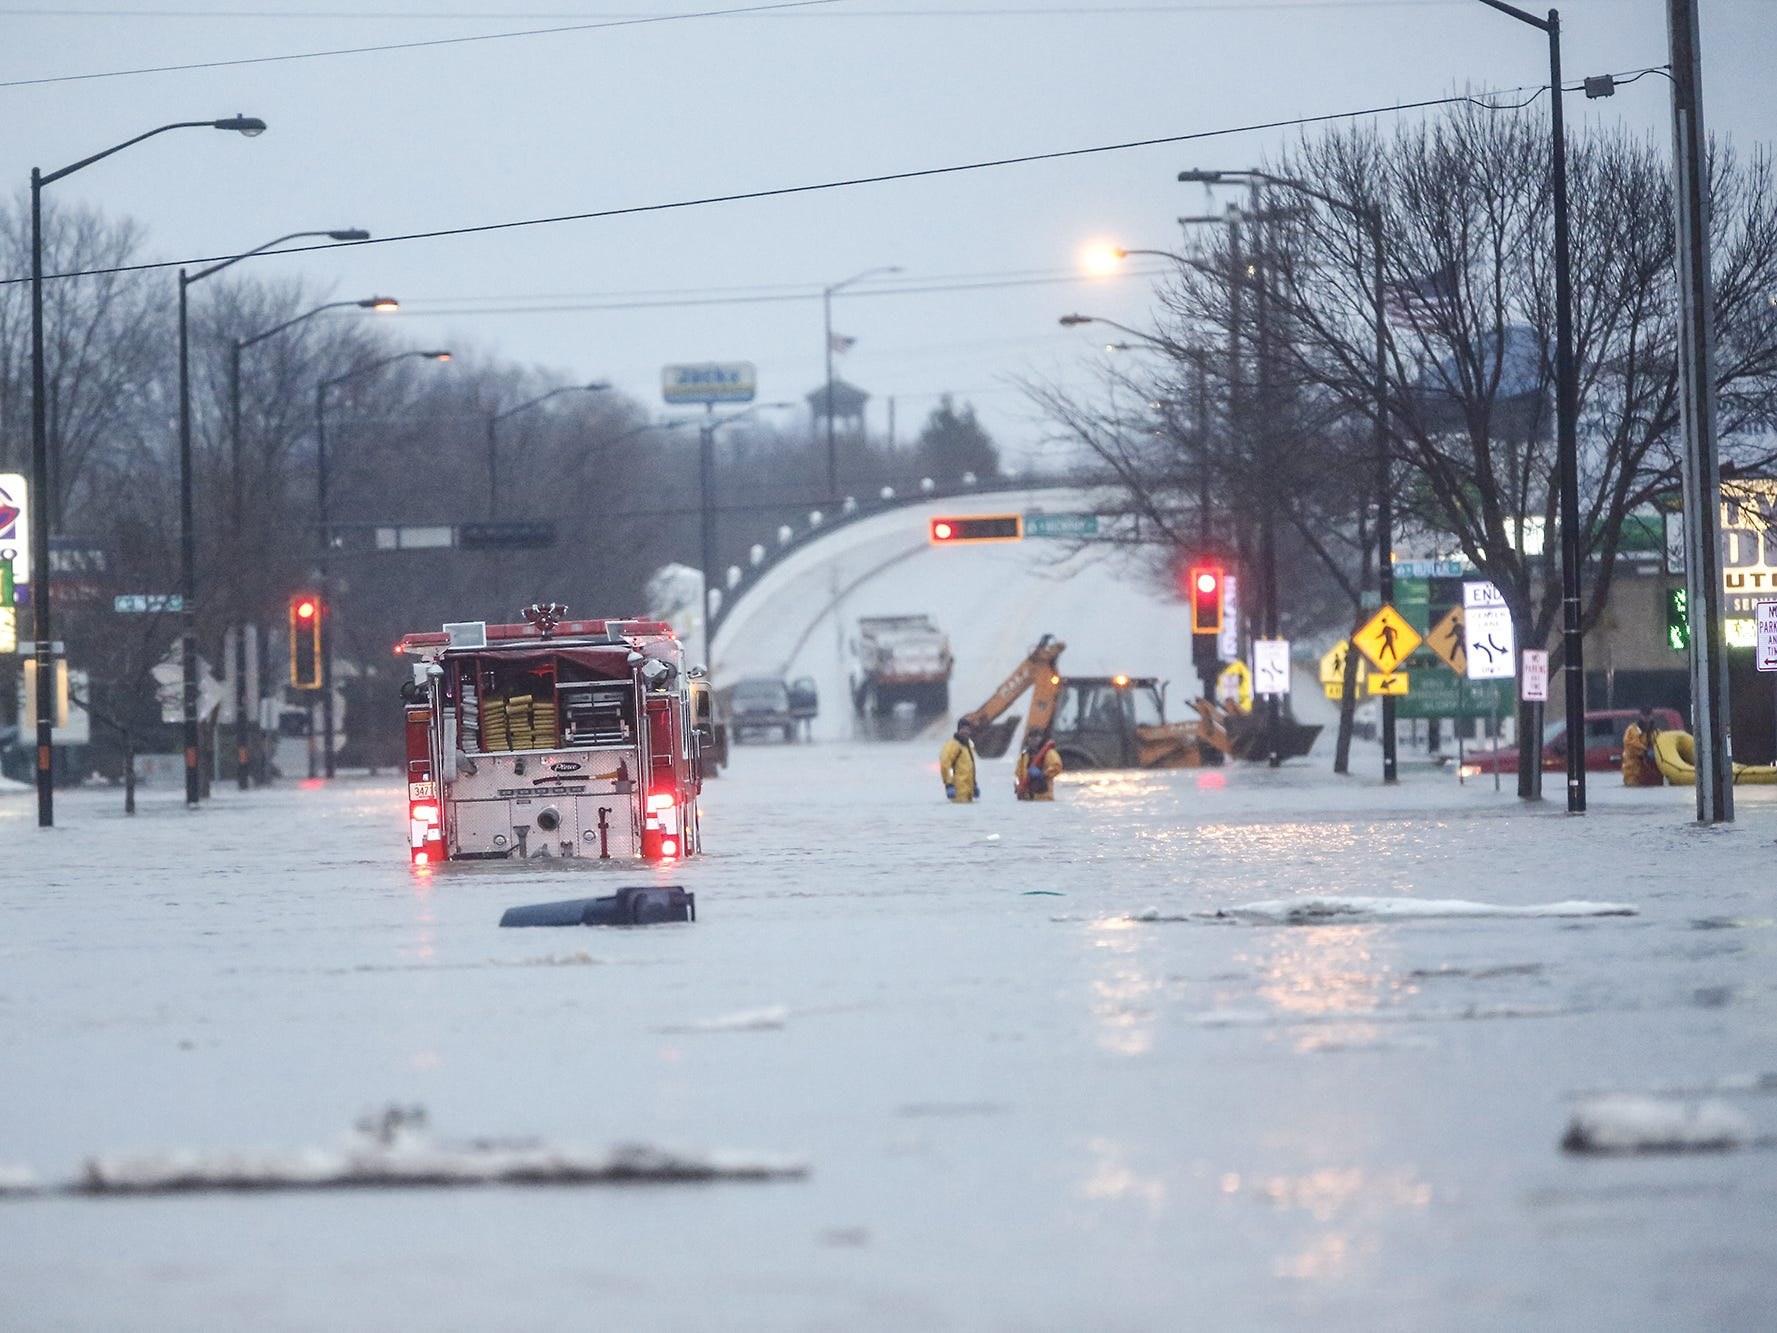 A Ripon fire truck makes it's way down a flooded Johnson Street Thursday, March 14, 2019. Ice jams on the east branch of the Fond du Lac River and heavy rain caused widespread flooding problems in the city. Doug Raflik/USA TODAY NETWORK-Wisconsin